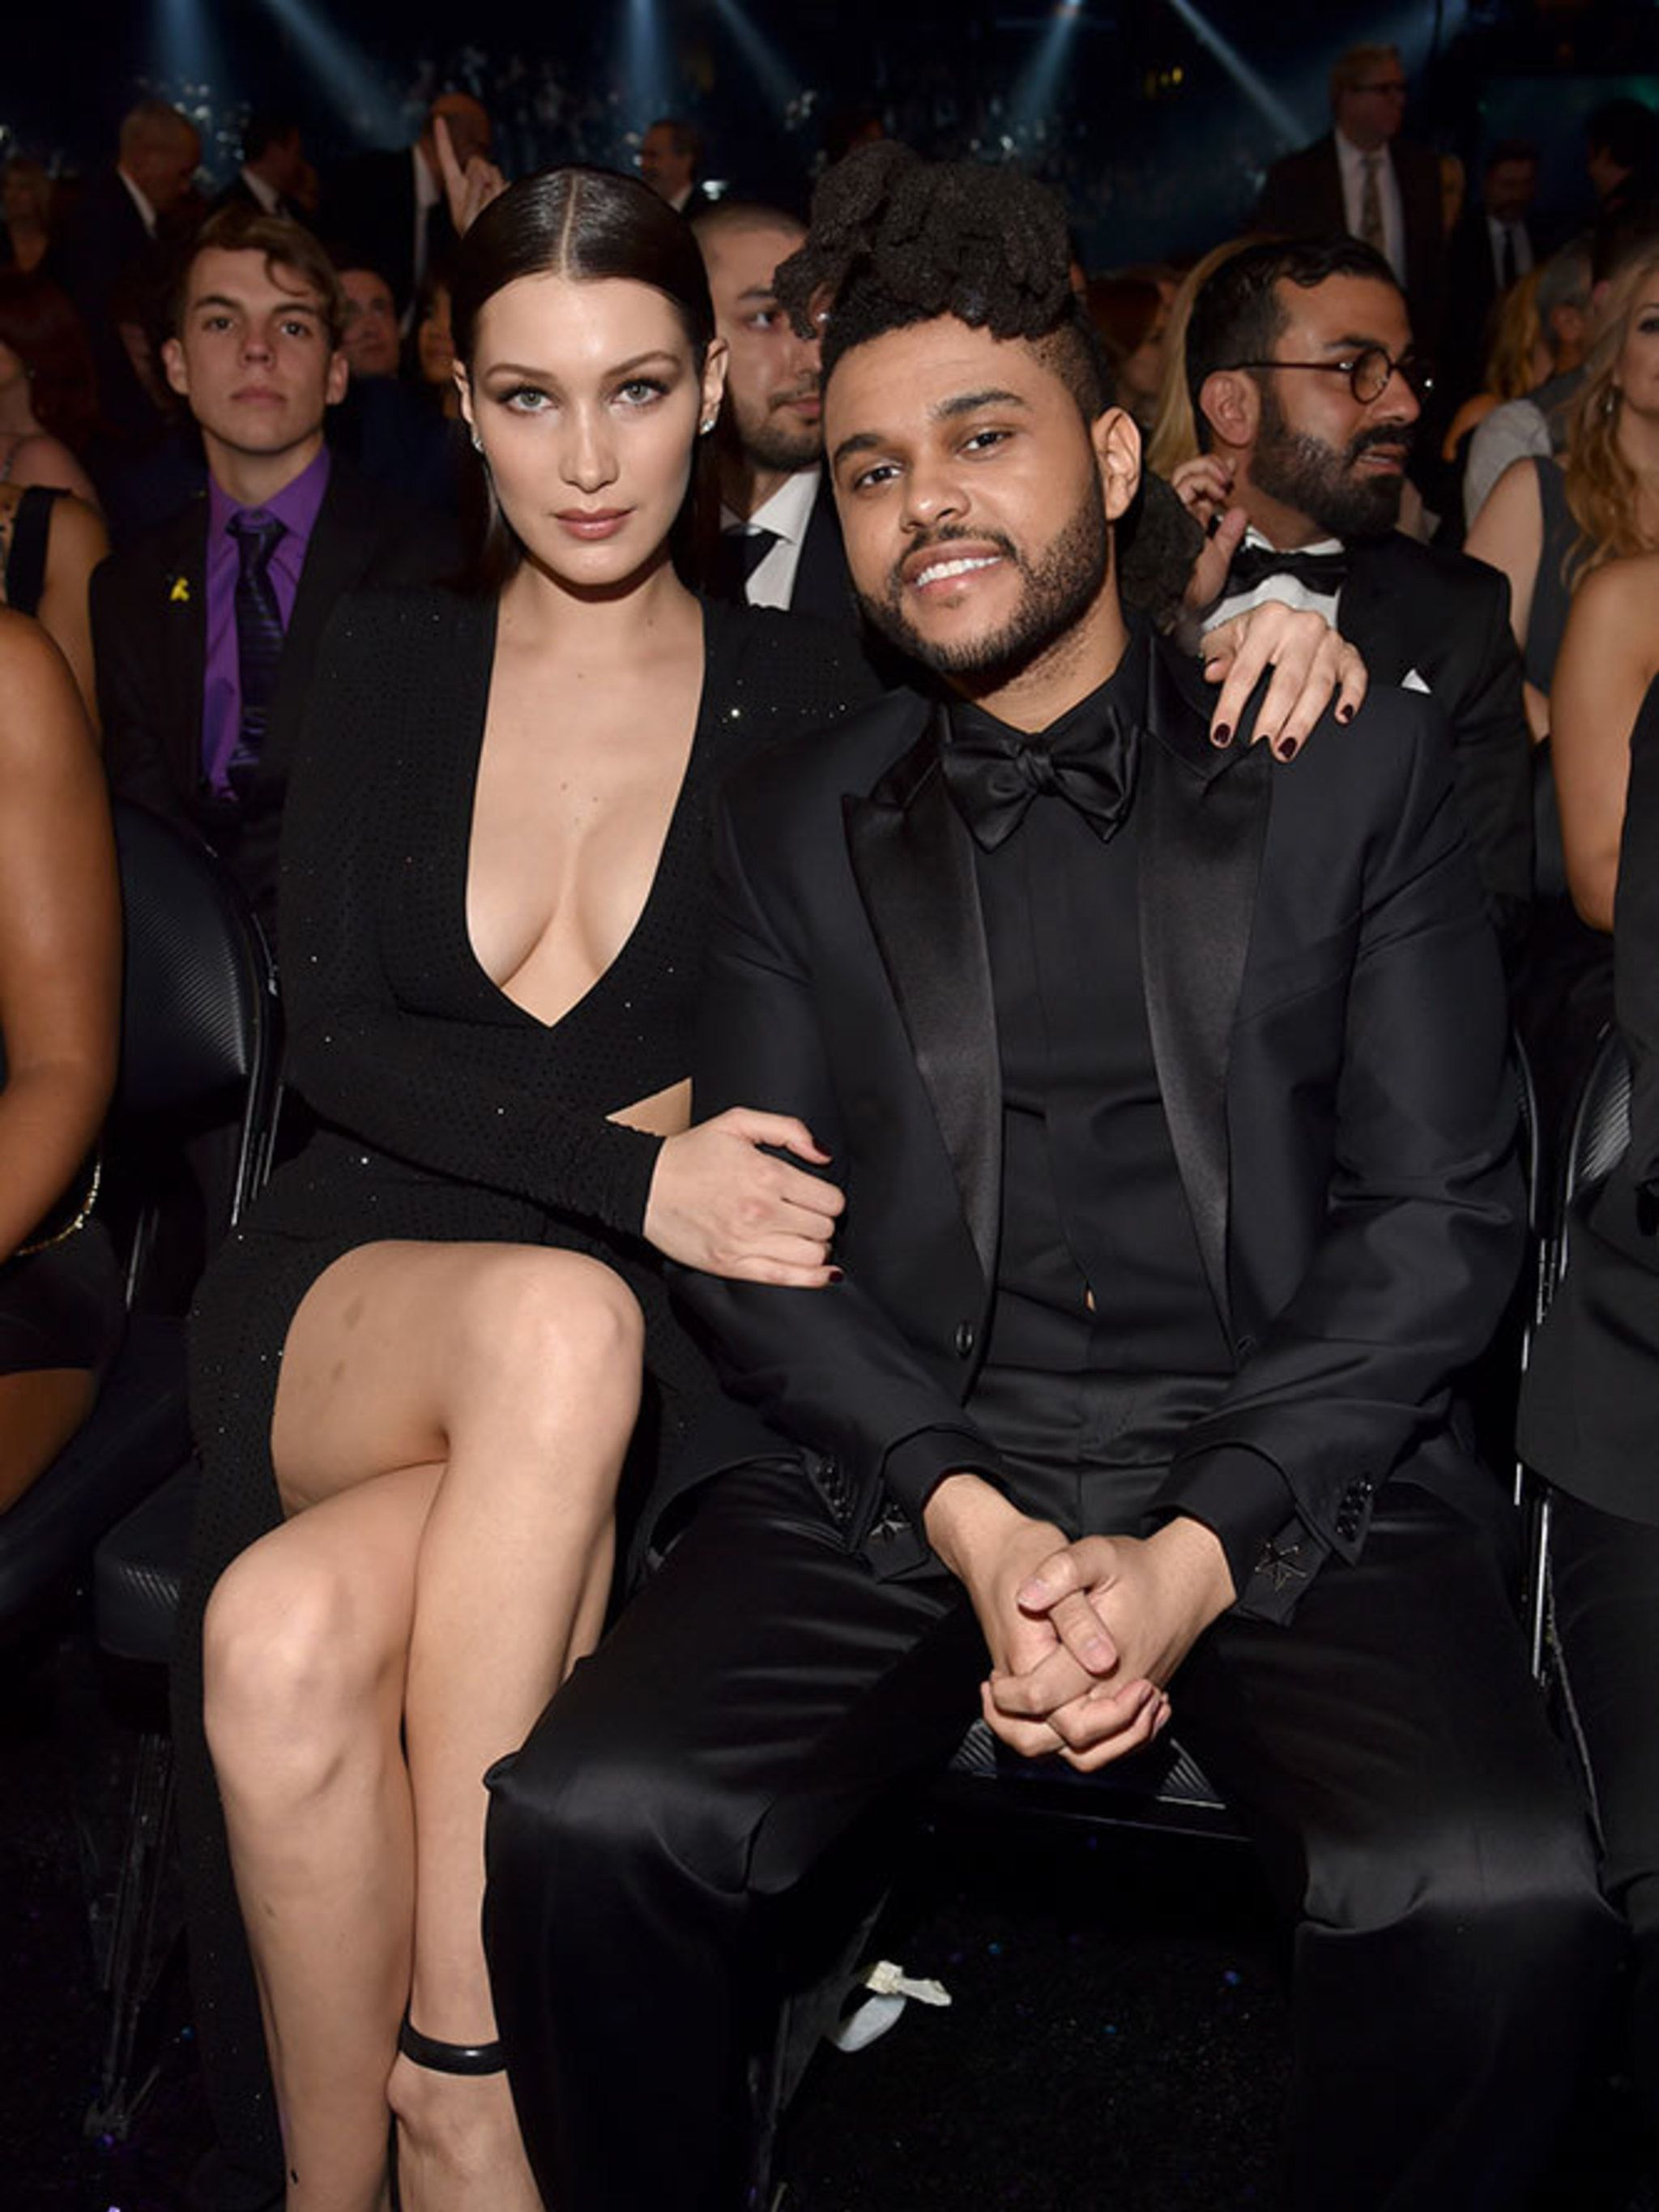 Forum on this topic: Bella Hadid and The Weeknd Just Kissed , bella-hadid-and-the-weeknd-just-kissed/